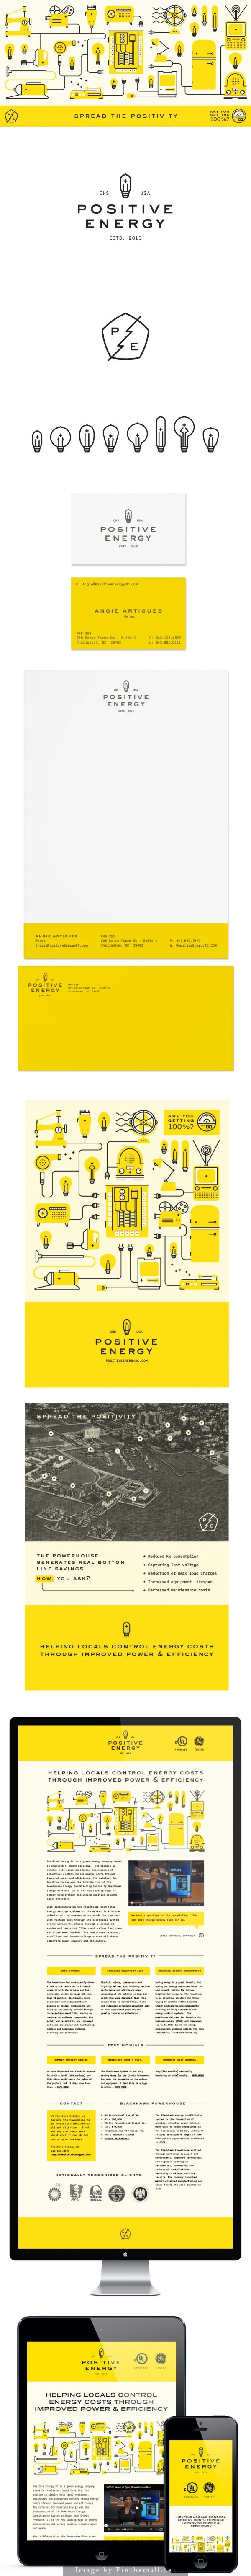 POSITIVE ENERGY | FUZZCO